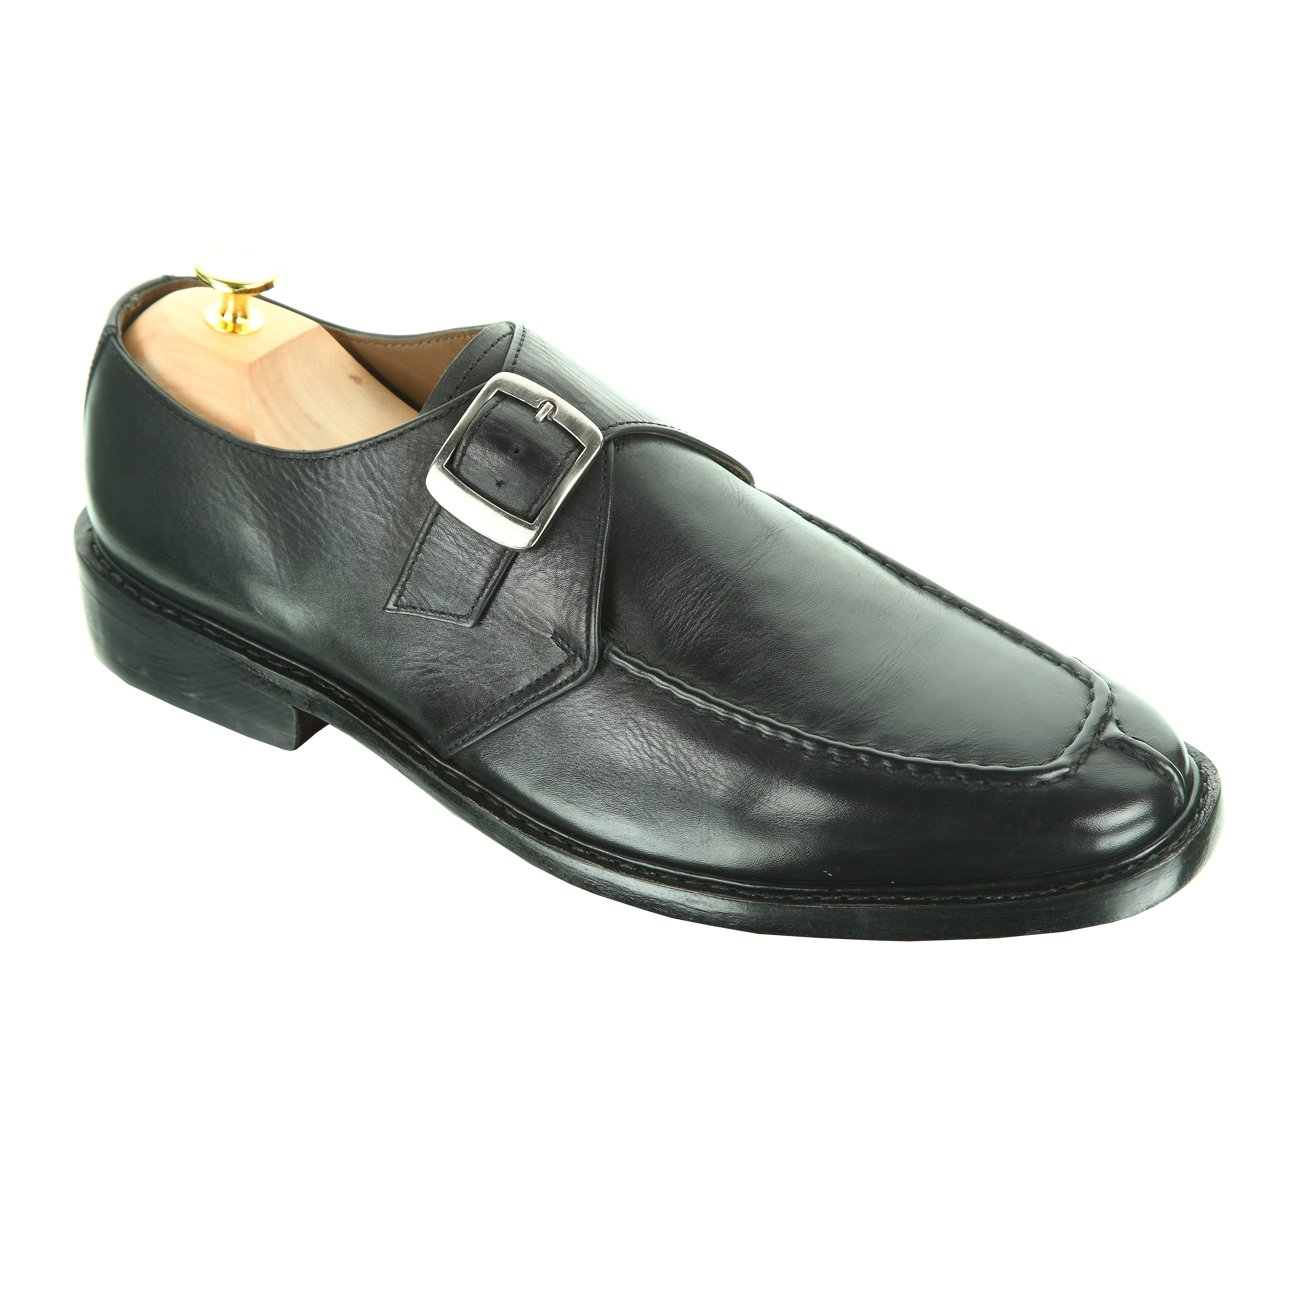 Handmade Damen Frost Alonti Mens Leather Dress Shoes with Single-buckle Strap, Color Black, Size US12